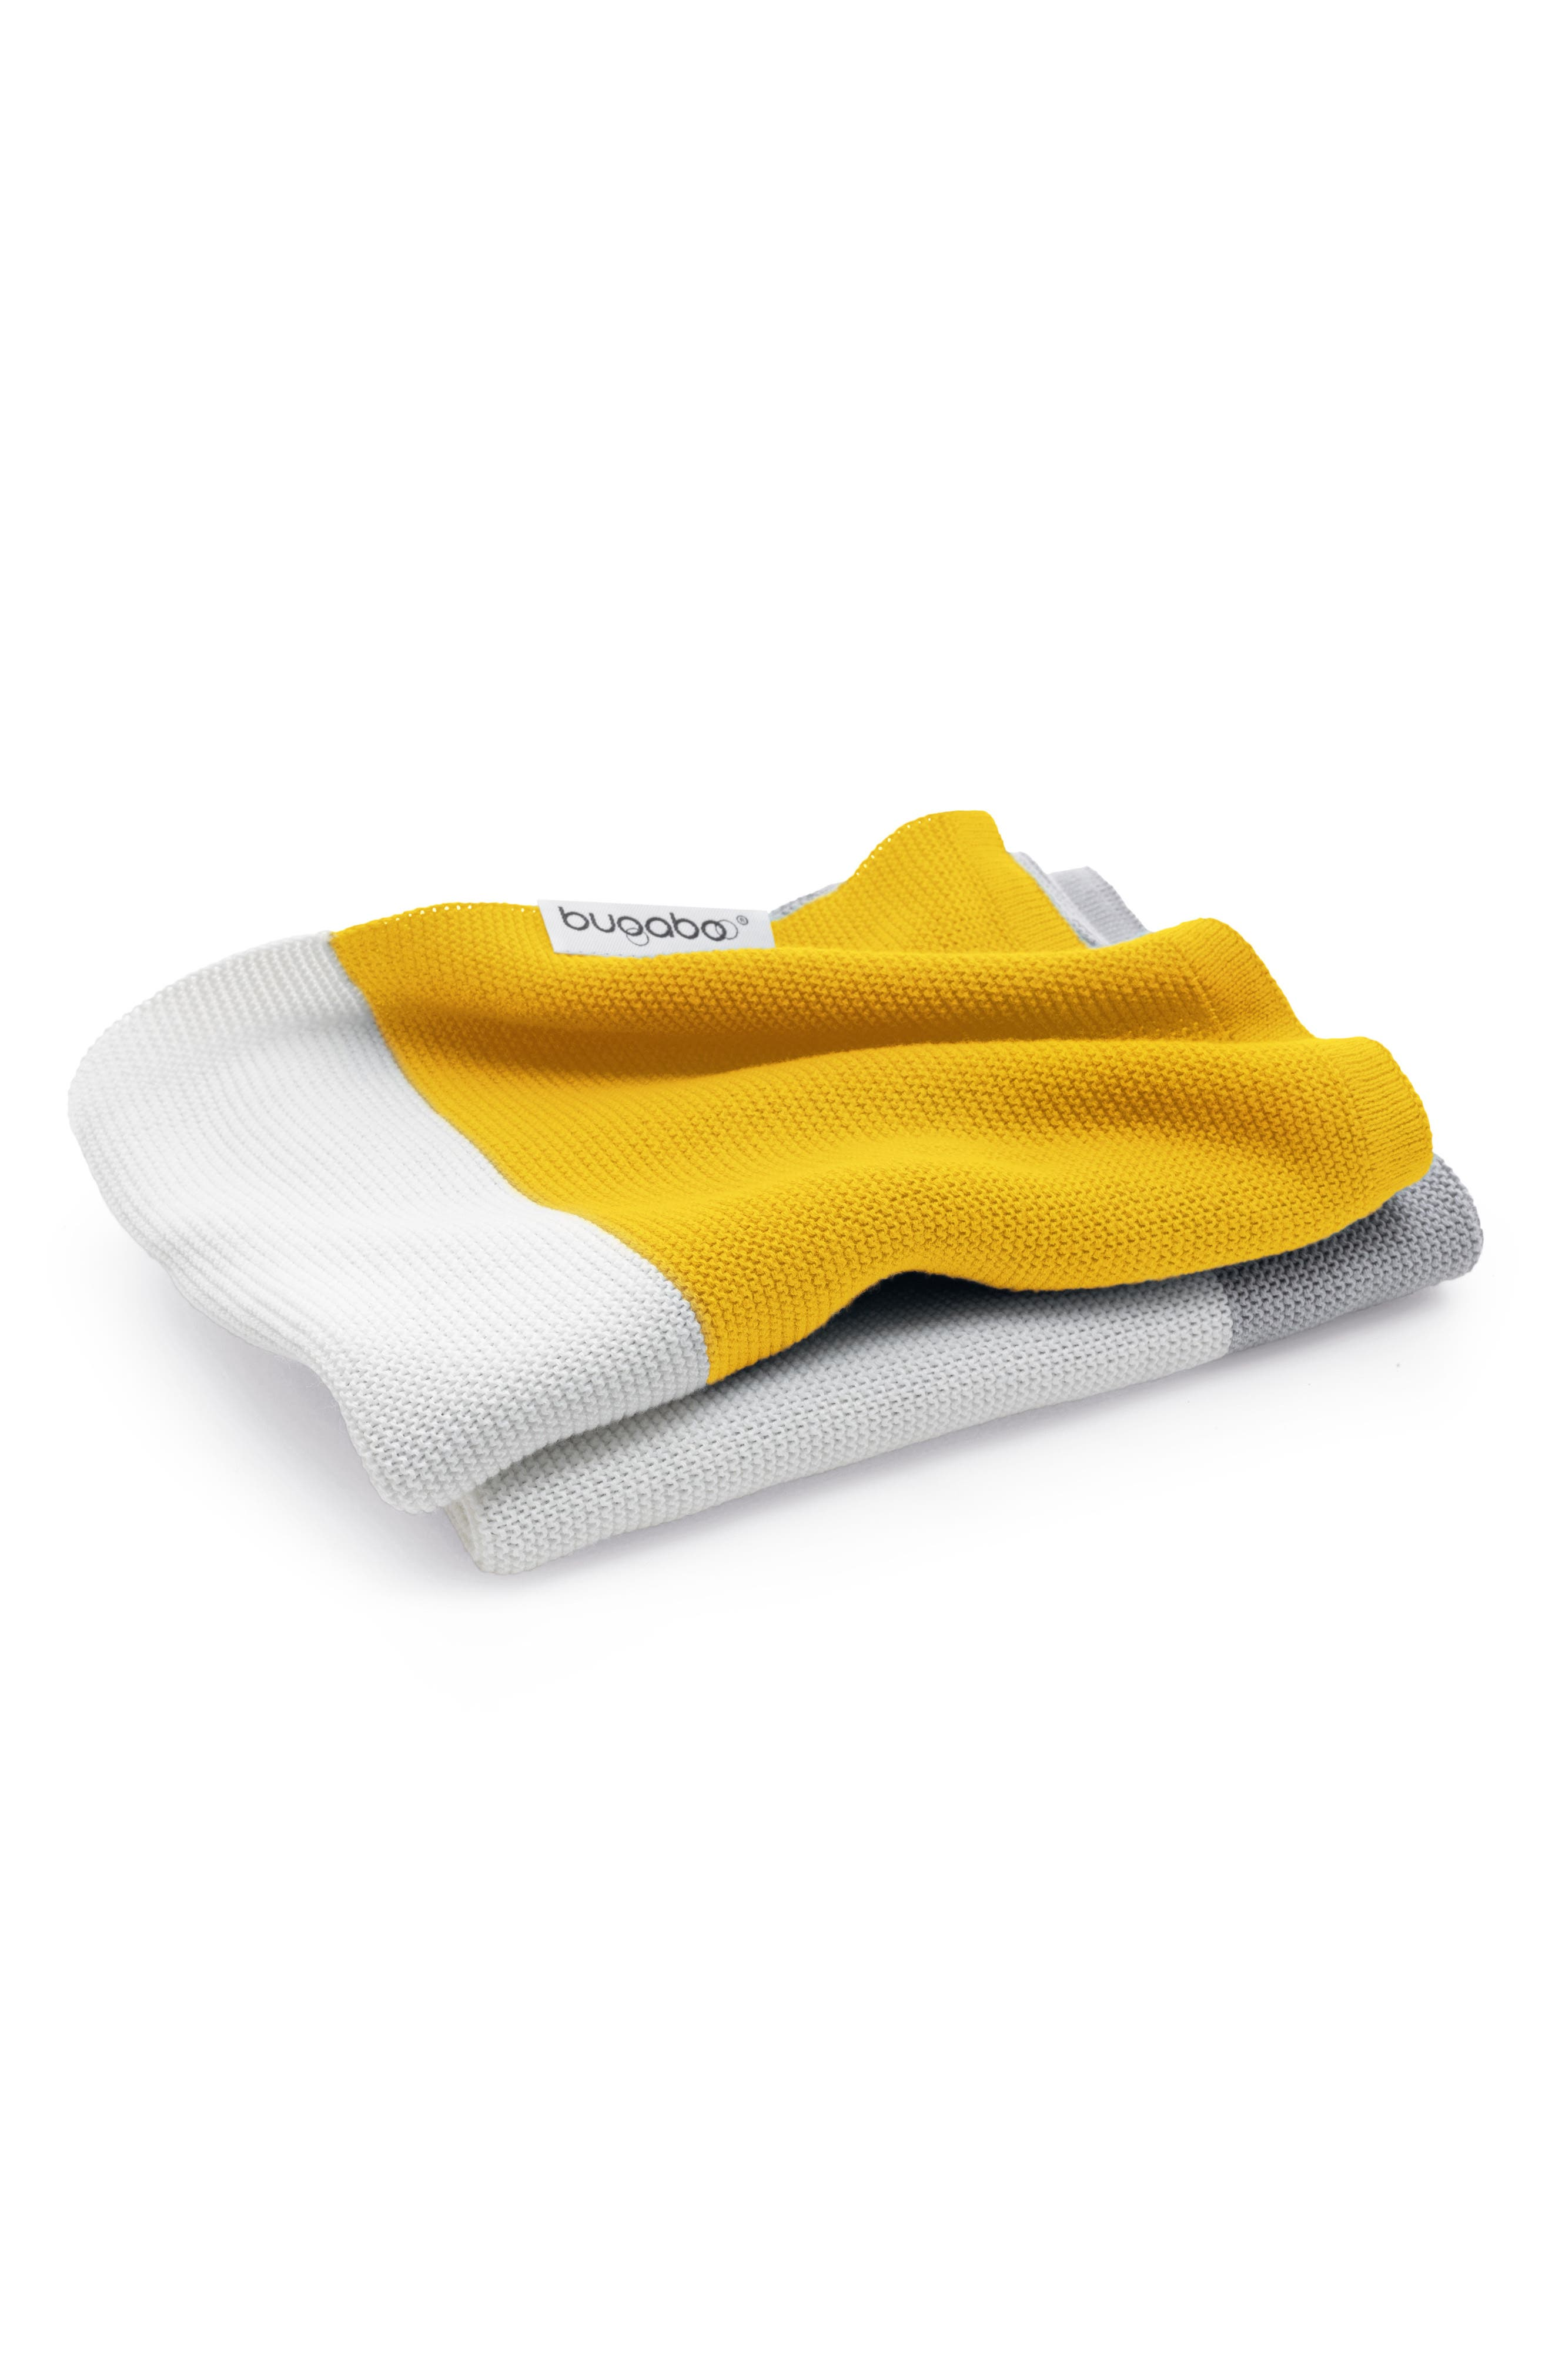 Light Cotton Blanket,                             Main thumbnail 1, color,                             Bright Yellow